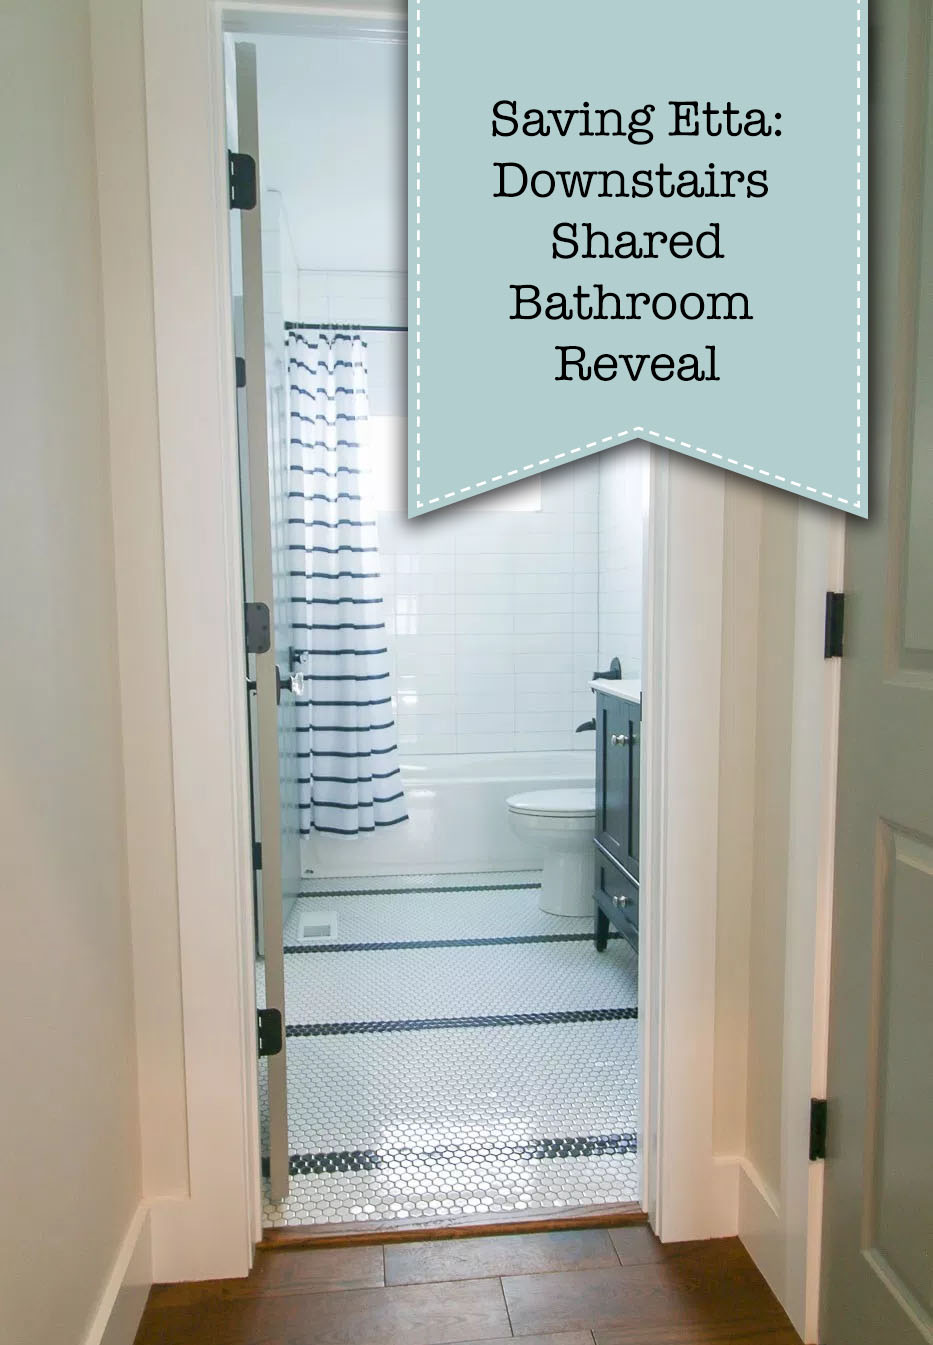 Saving Etta: Downstairs Bathroom Reveal